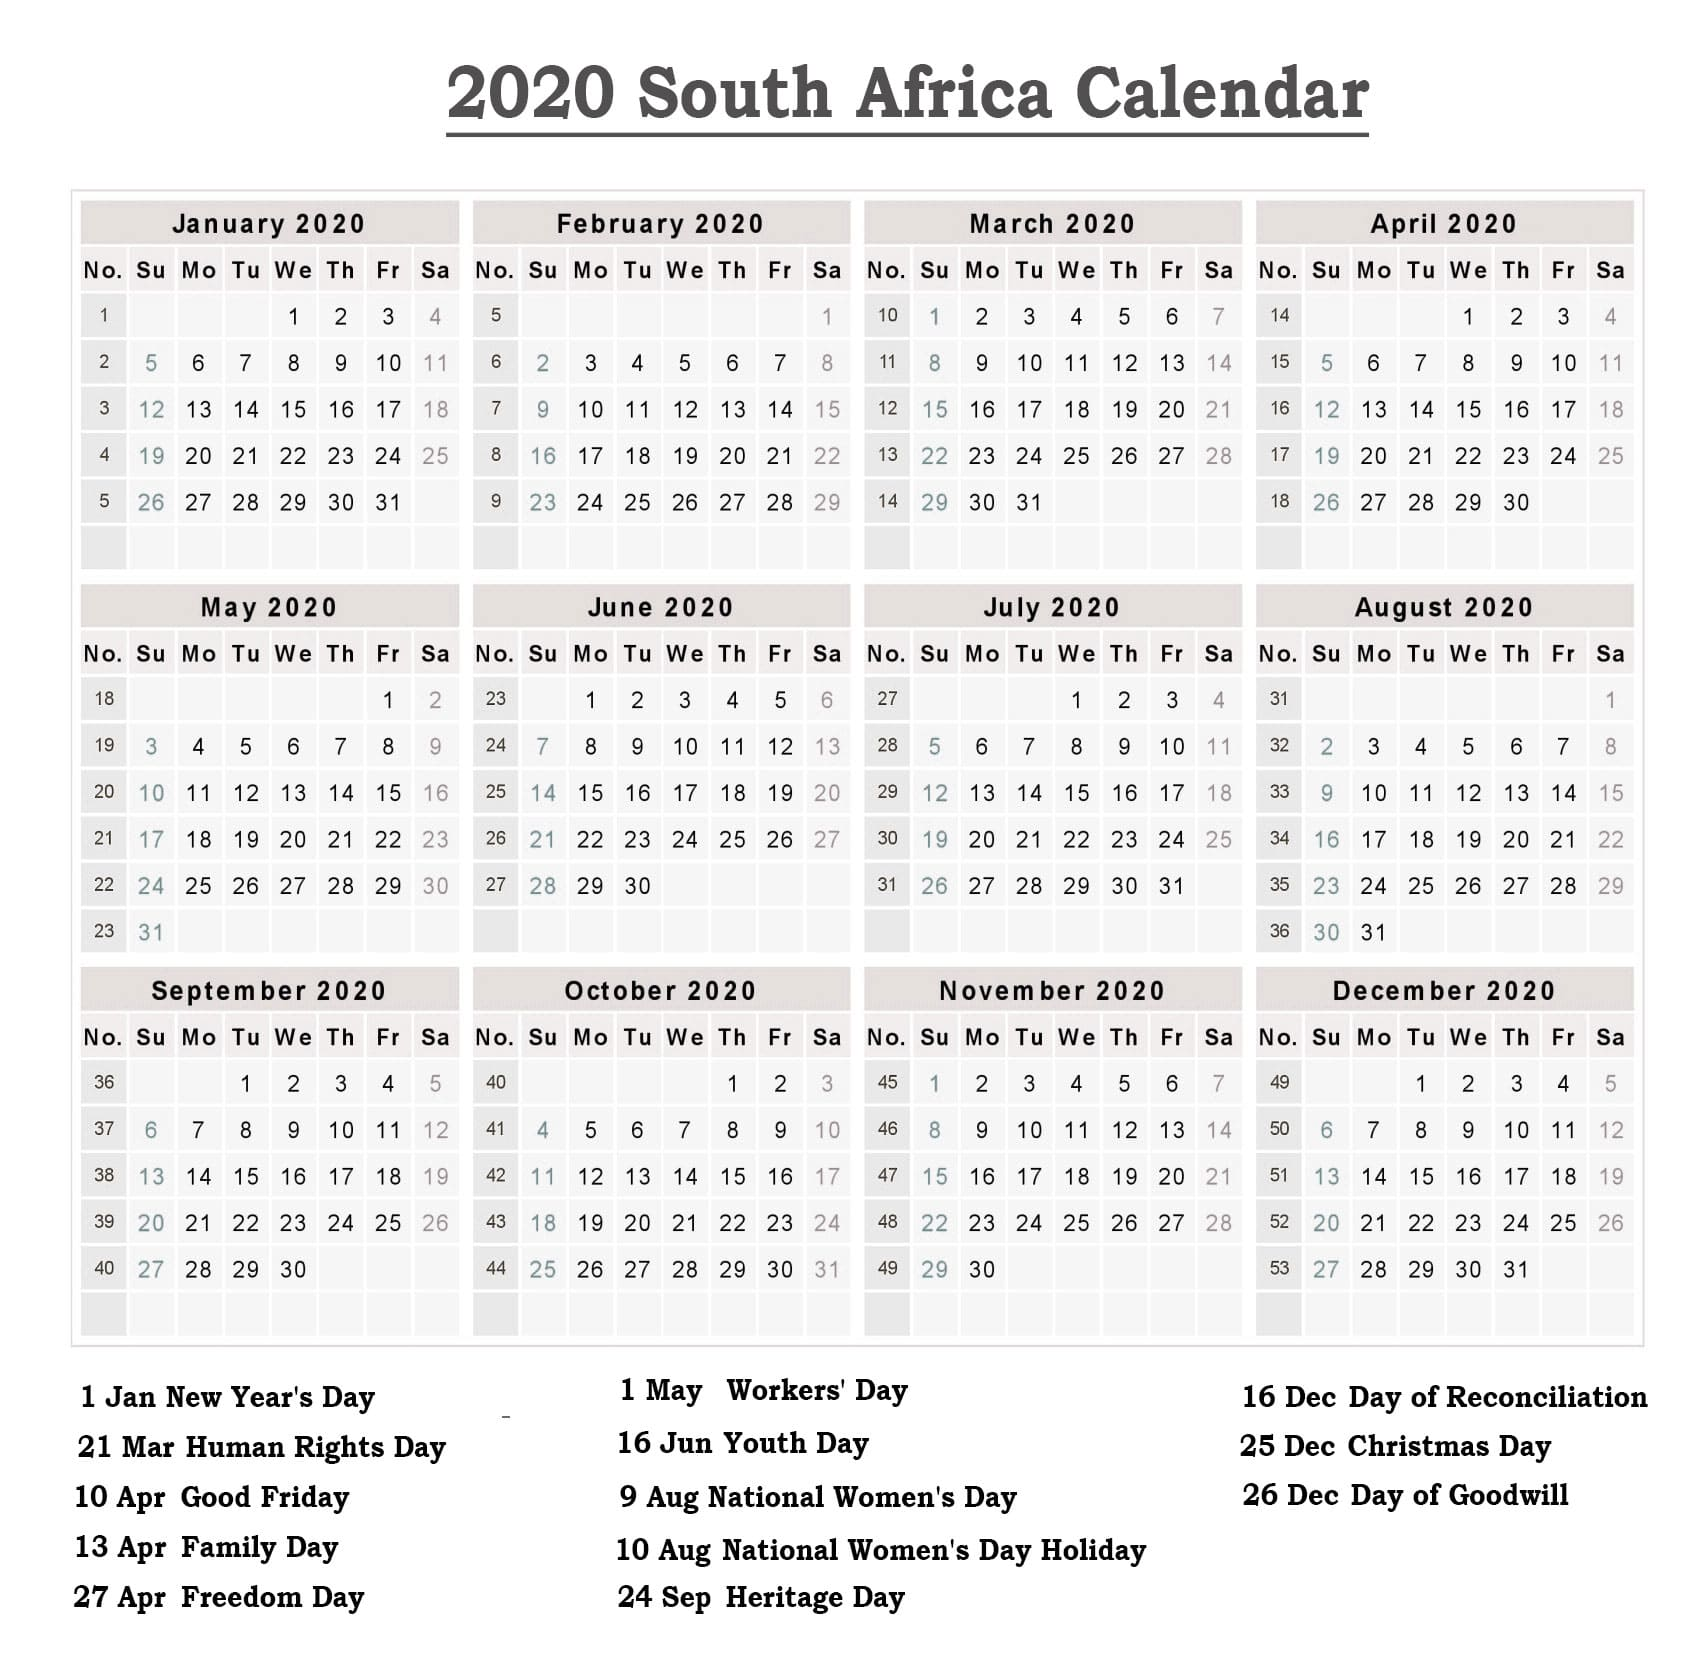 Calendar 2020 Templates With South Africa Holidays